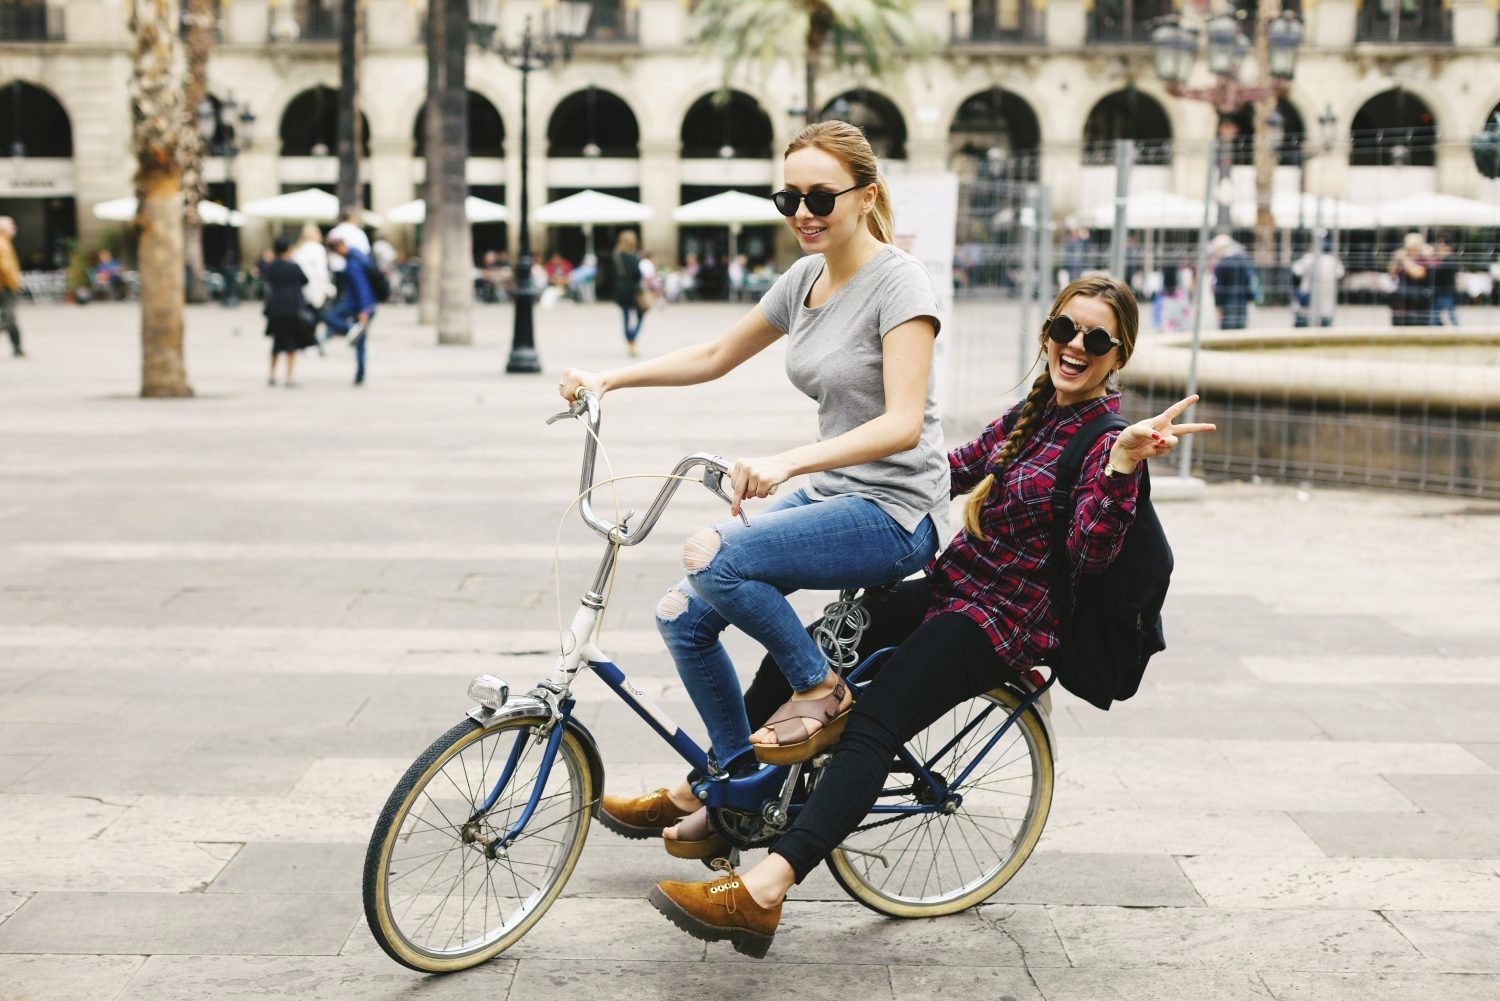 Two immature women cycling on one bike